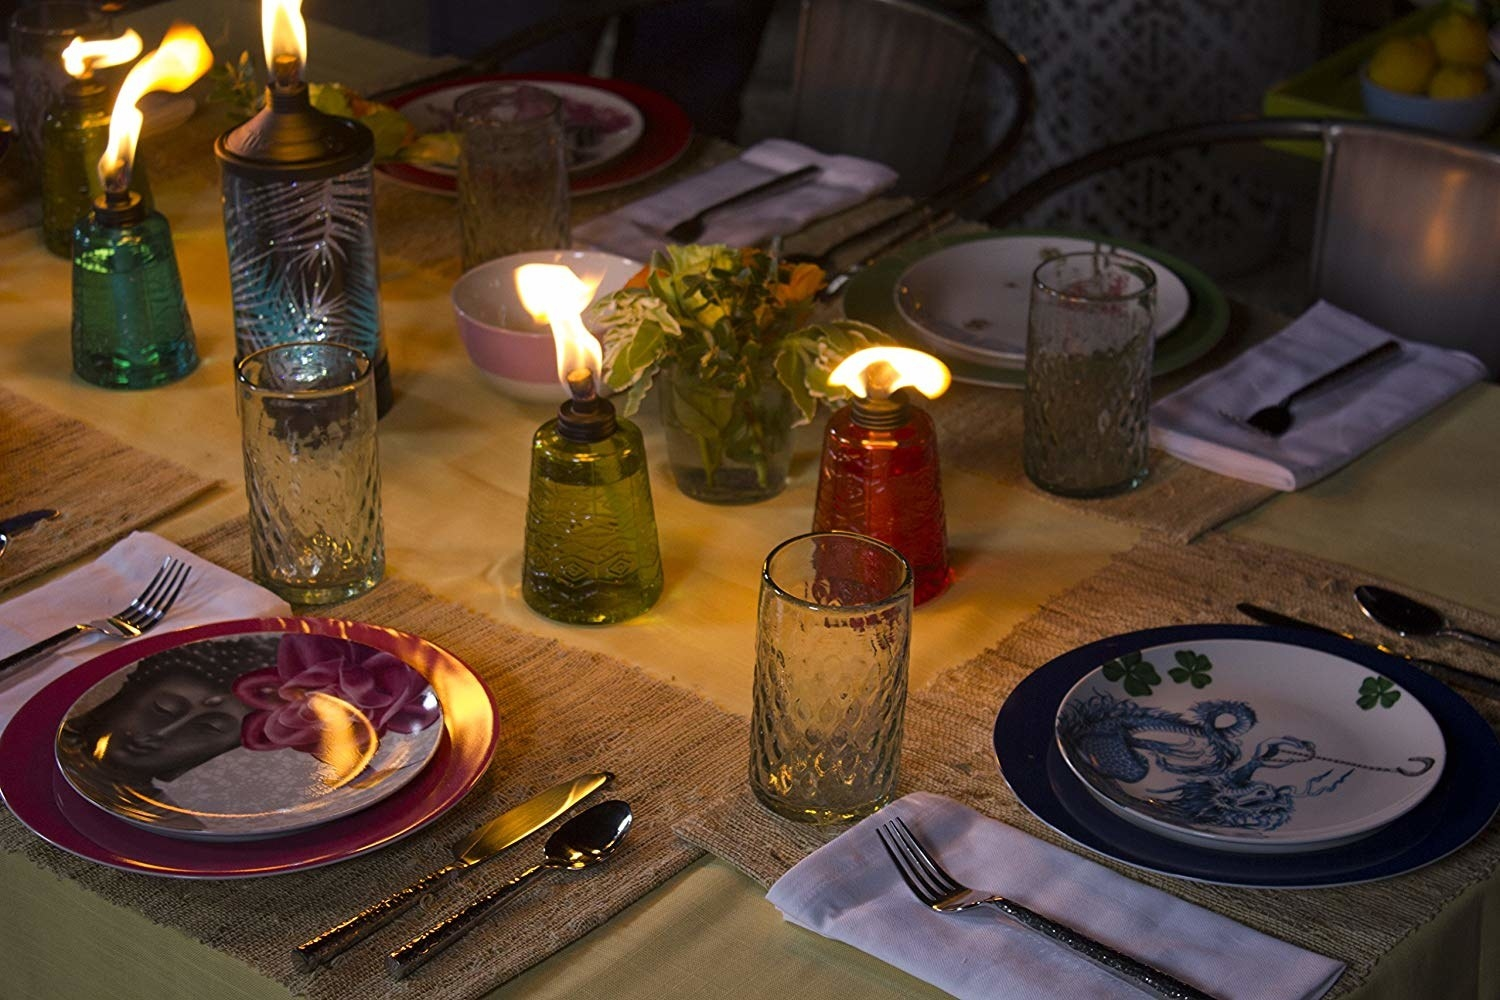 outdoor table setting at night with the colorful glass-size tiki torches lit